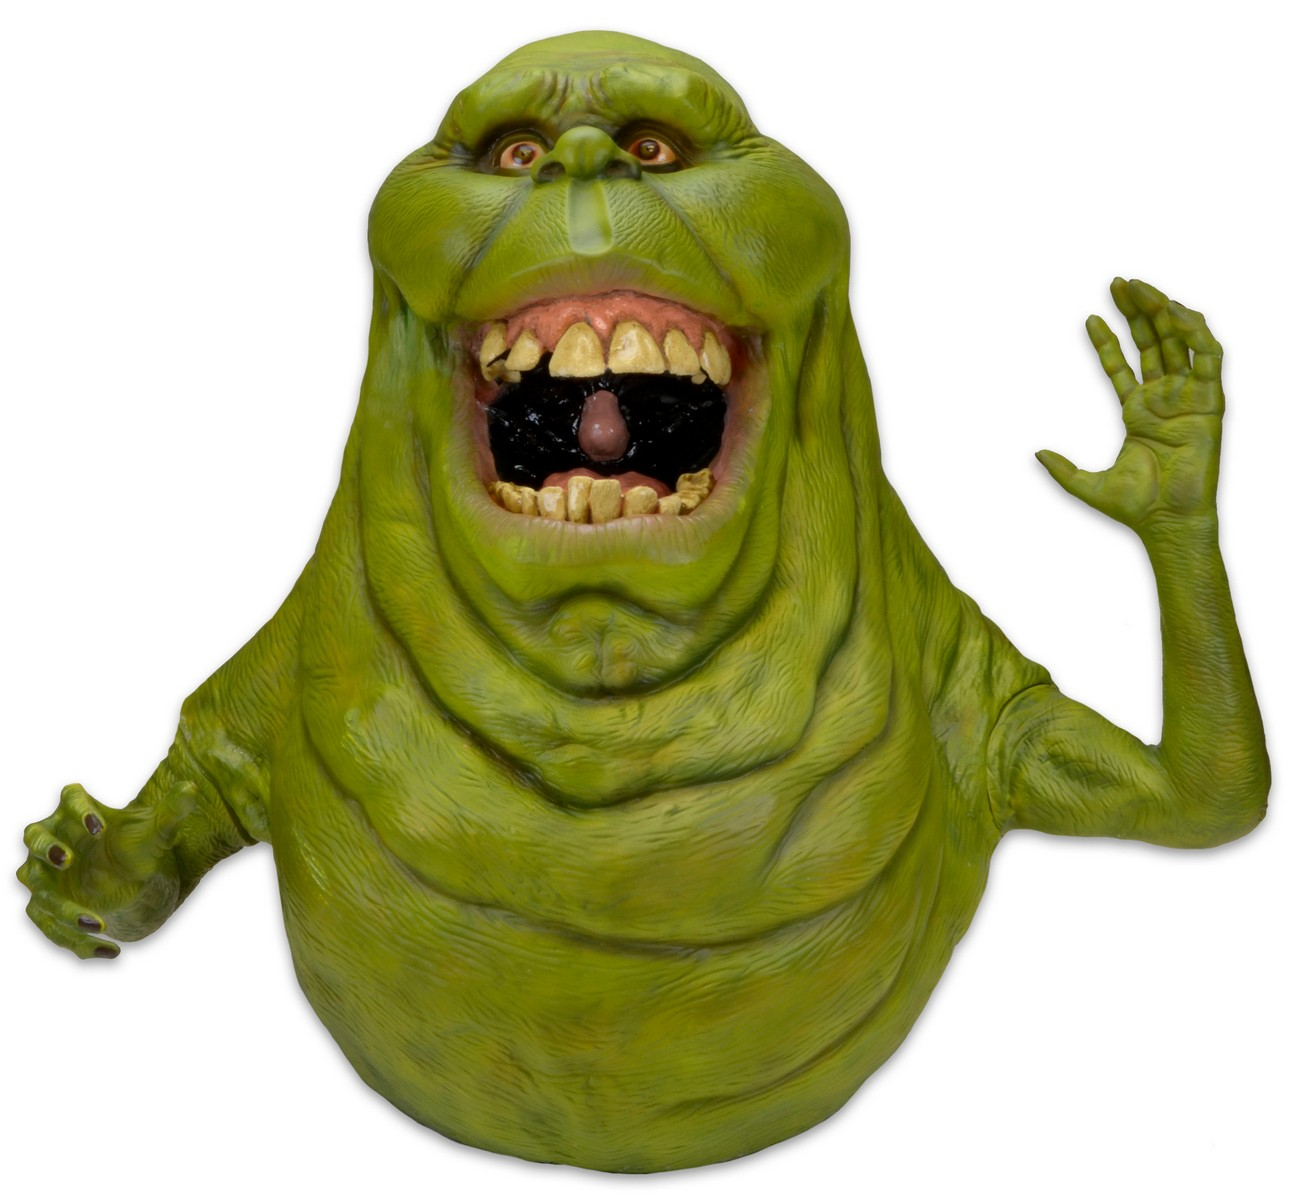 NECA: Large Scale Foam Figure Slimer